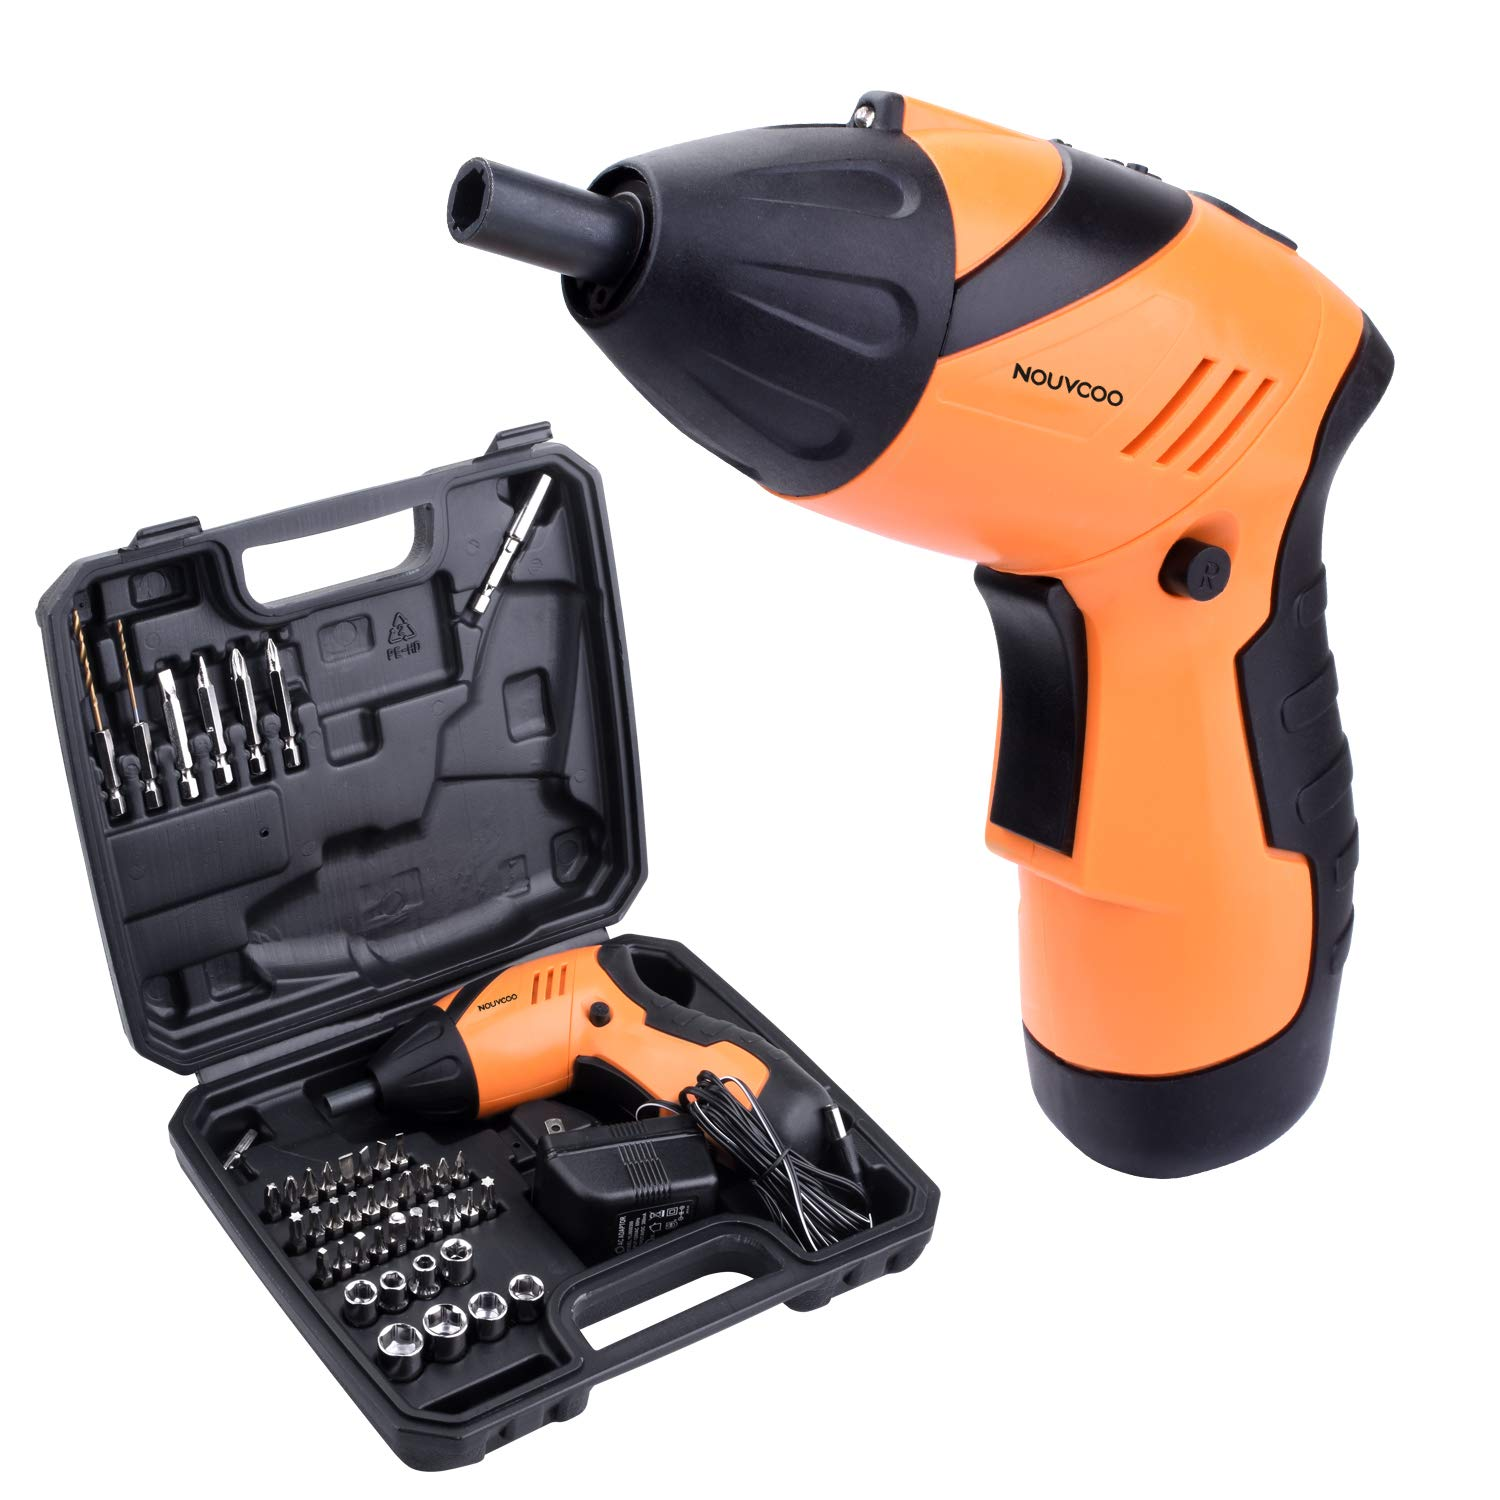 NOUVCOO 45 in 1 Portable Electric Cordless Rechargeable Screwdriver kit,4.8V Cordless Drill Power Tools with Led&43pcs Screws Sleeves and Drill Bits with case NC09 by NOUVCOO